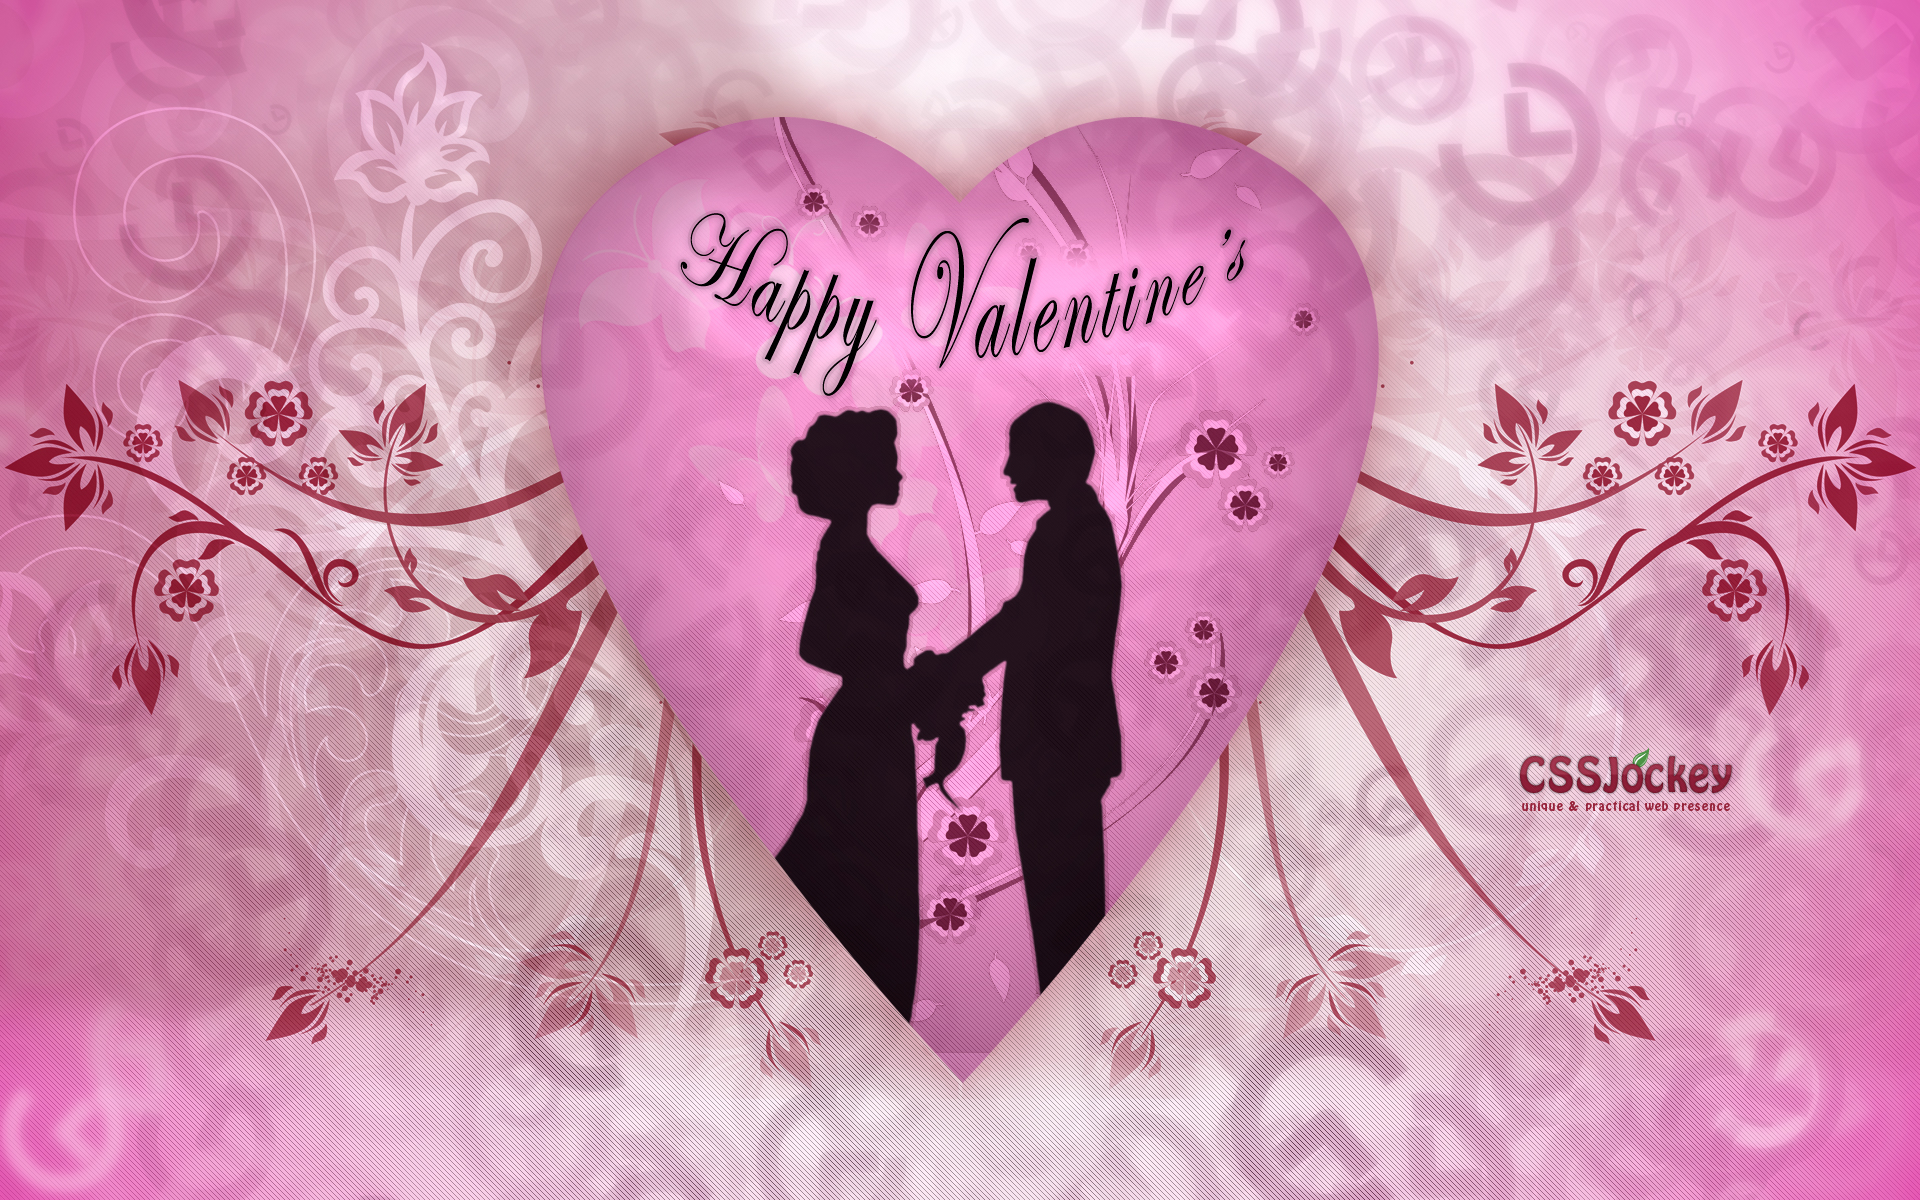 happy valentines day wallpapers1920x1200 1920x1200